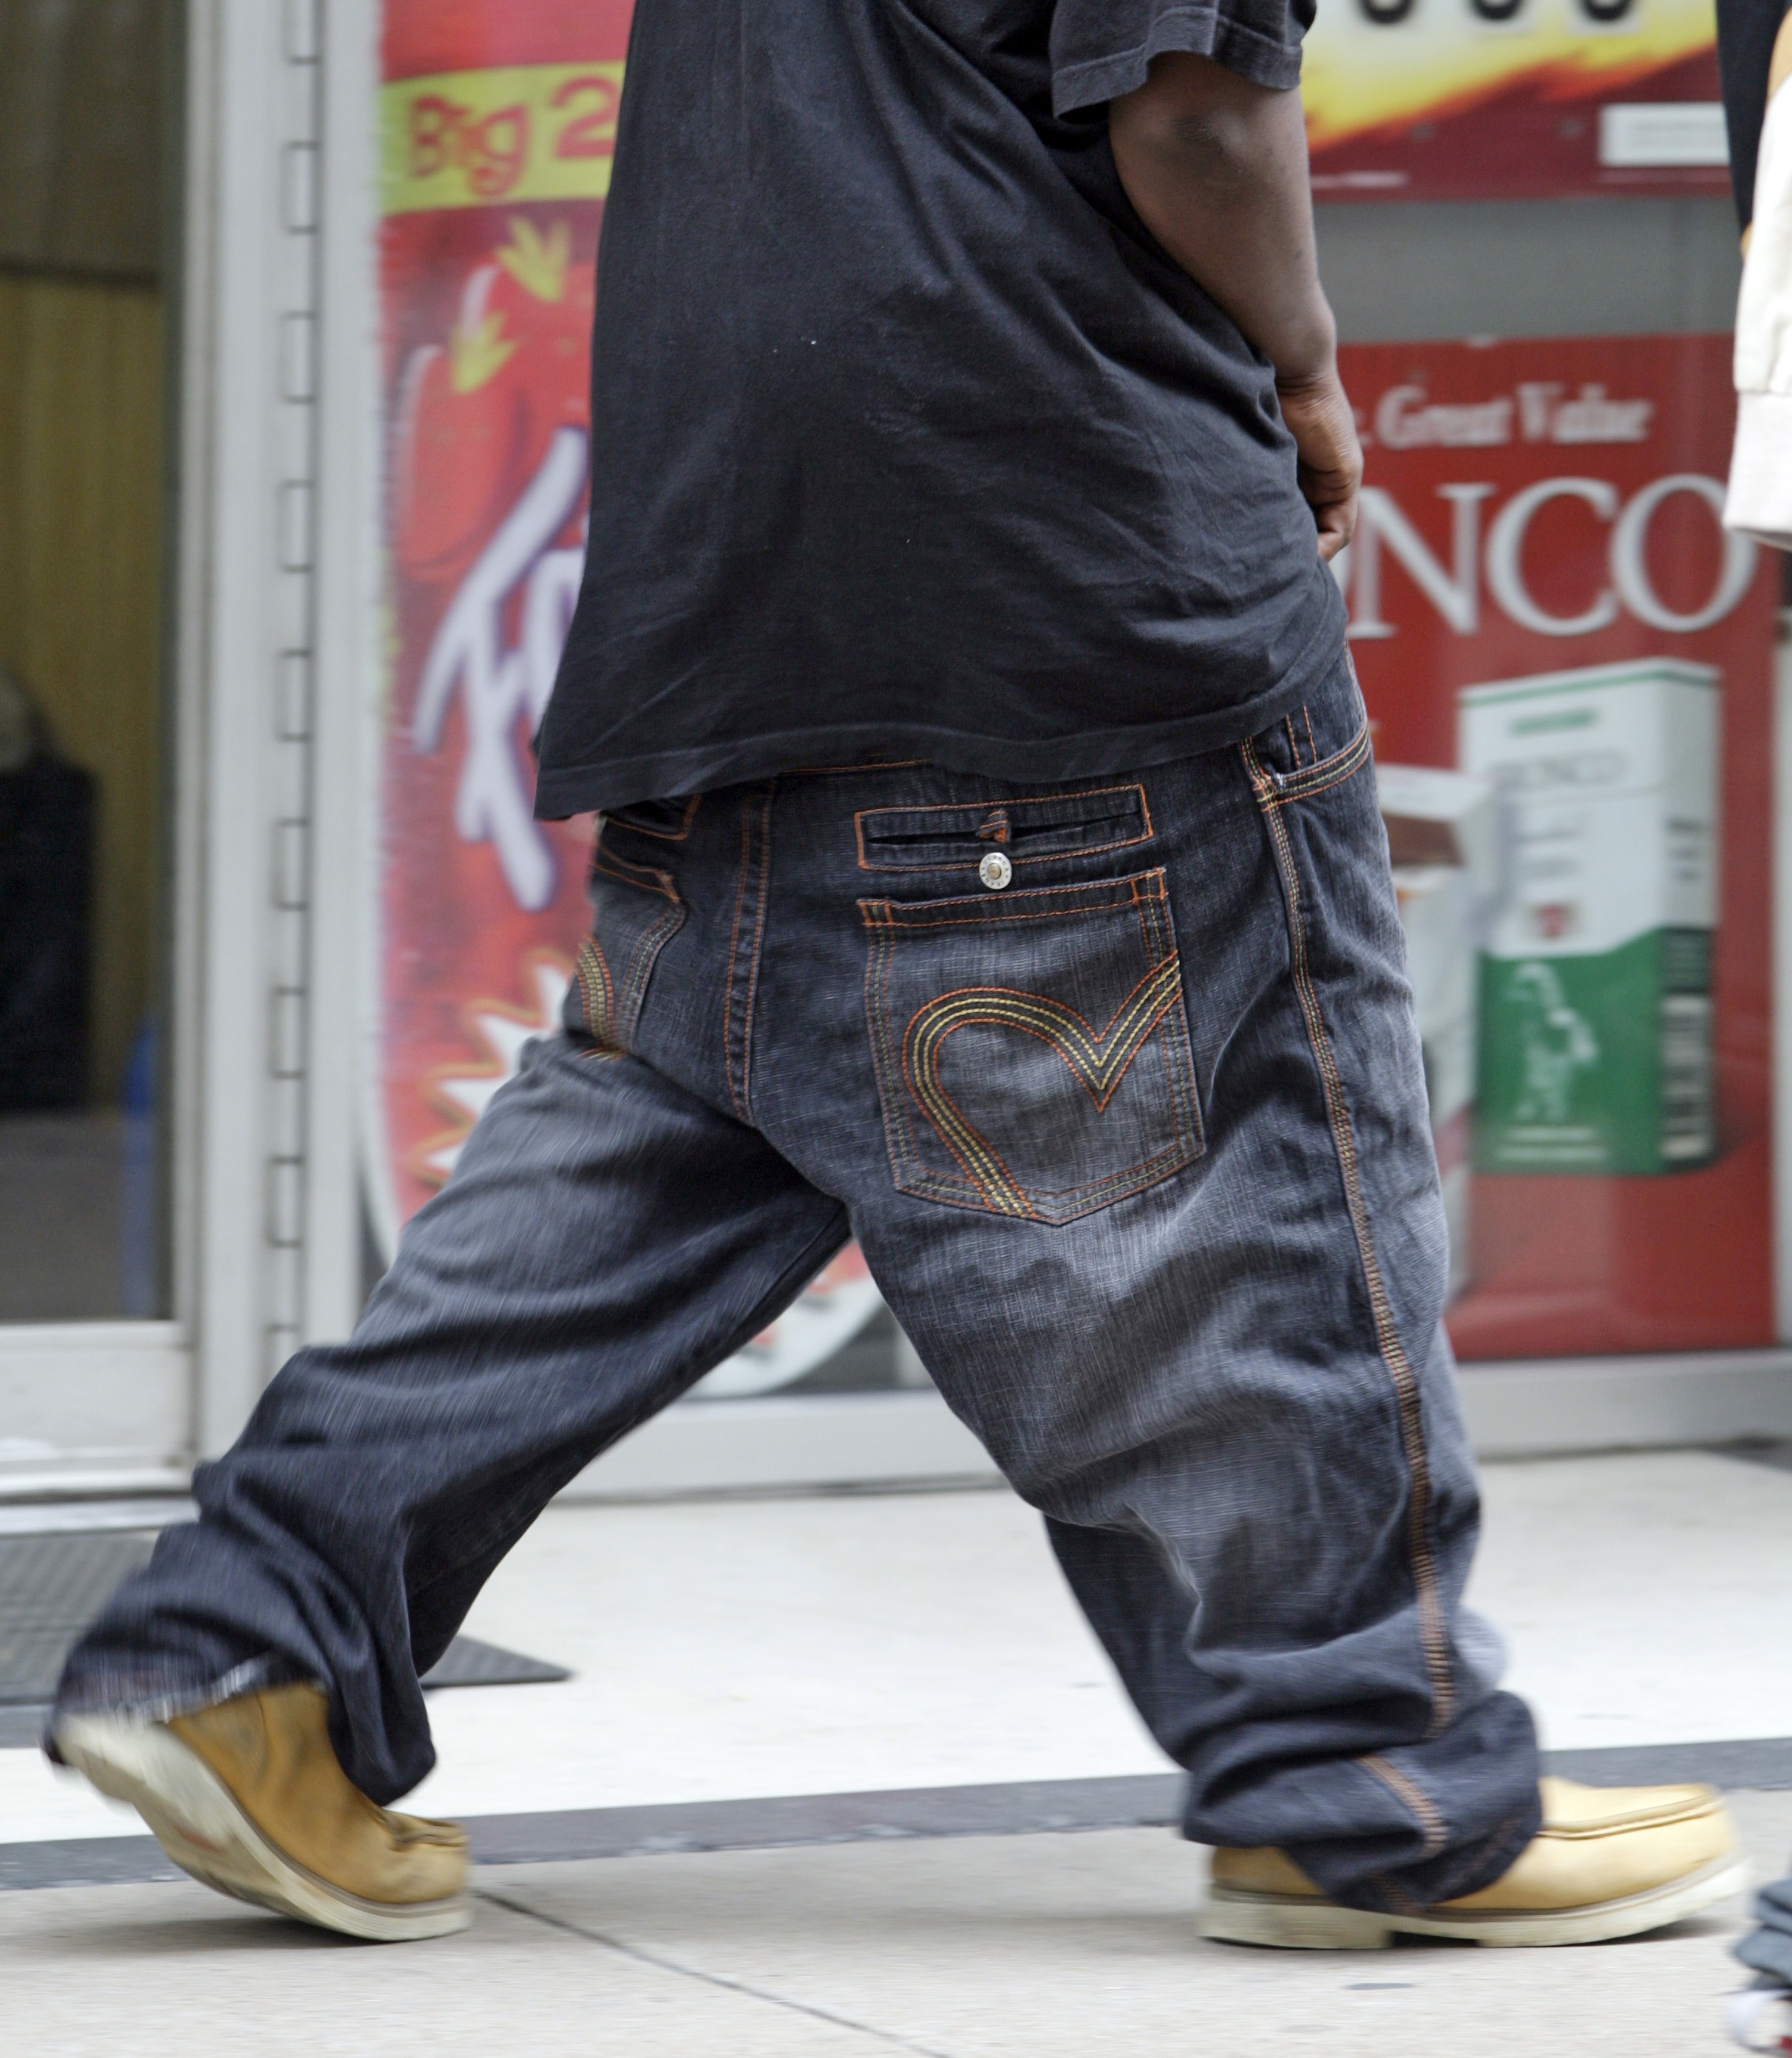 Tennessee Targets Baggy Pants | The Spokesman-Review